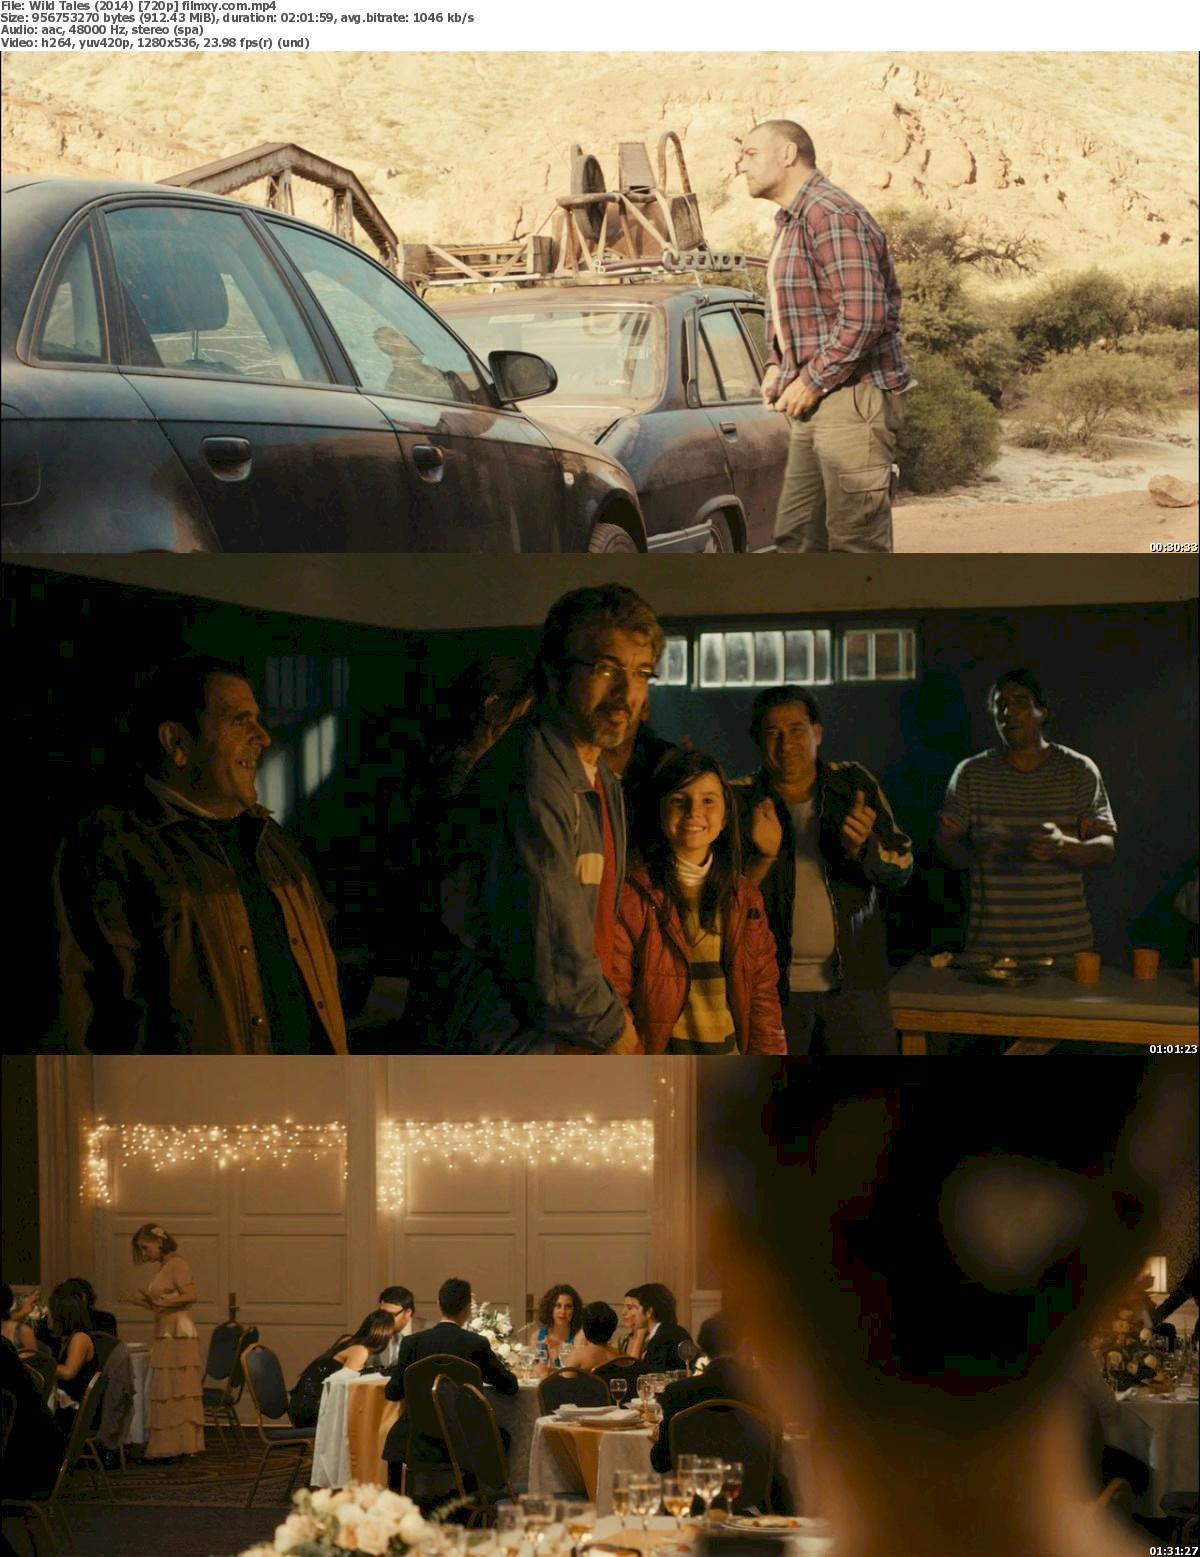 Wild Tales (2014) 720p & 1080p Bluray Free Download 720p Screenshot